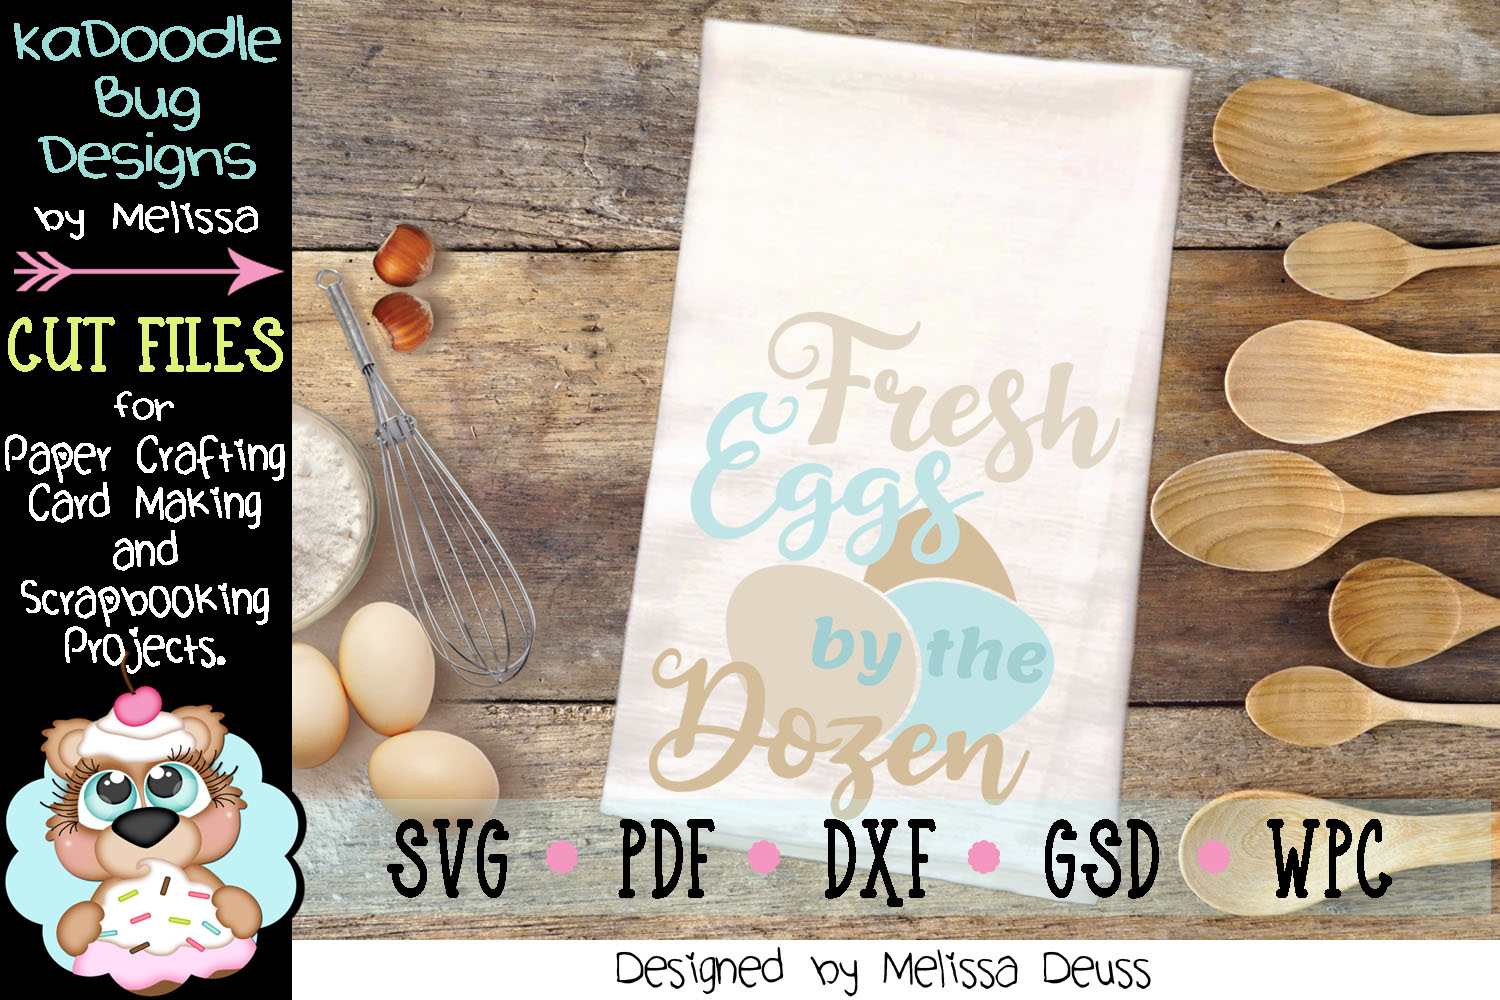 Fresh Eggs by the Dozen Vertical Cut File - SVG PDF DXF GSD example image 3